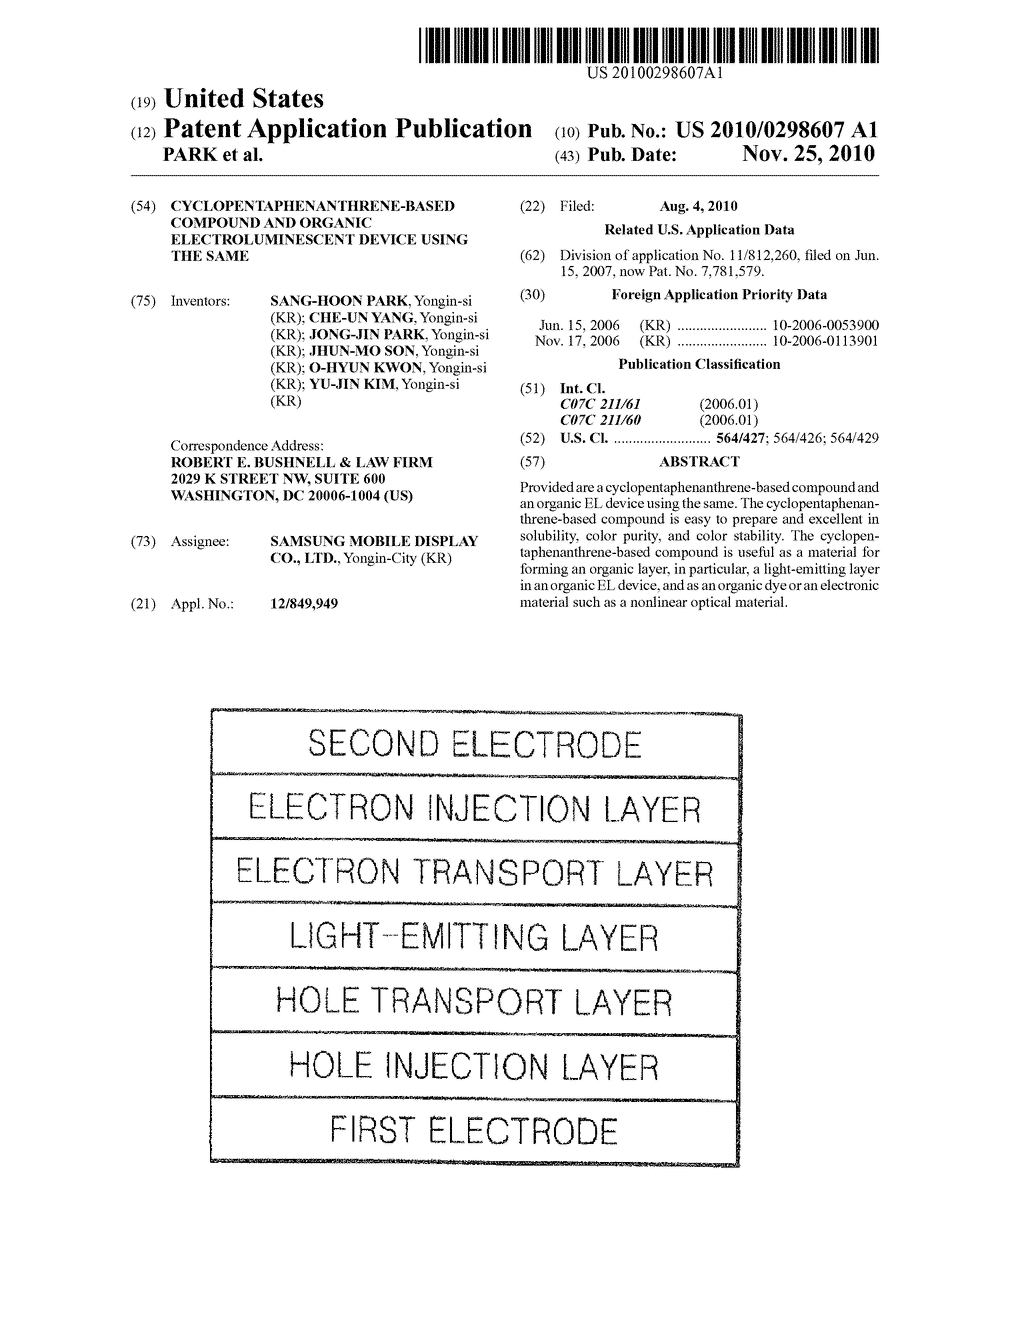 CYCLOPENTAPHENANTHRENE-BASED COMPOUND AND ORGANIC ELECTROLUMINESCENT DEVICE USING THE SAME - diagram, schematic, and image 01